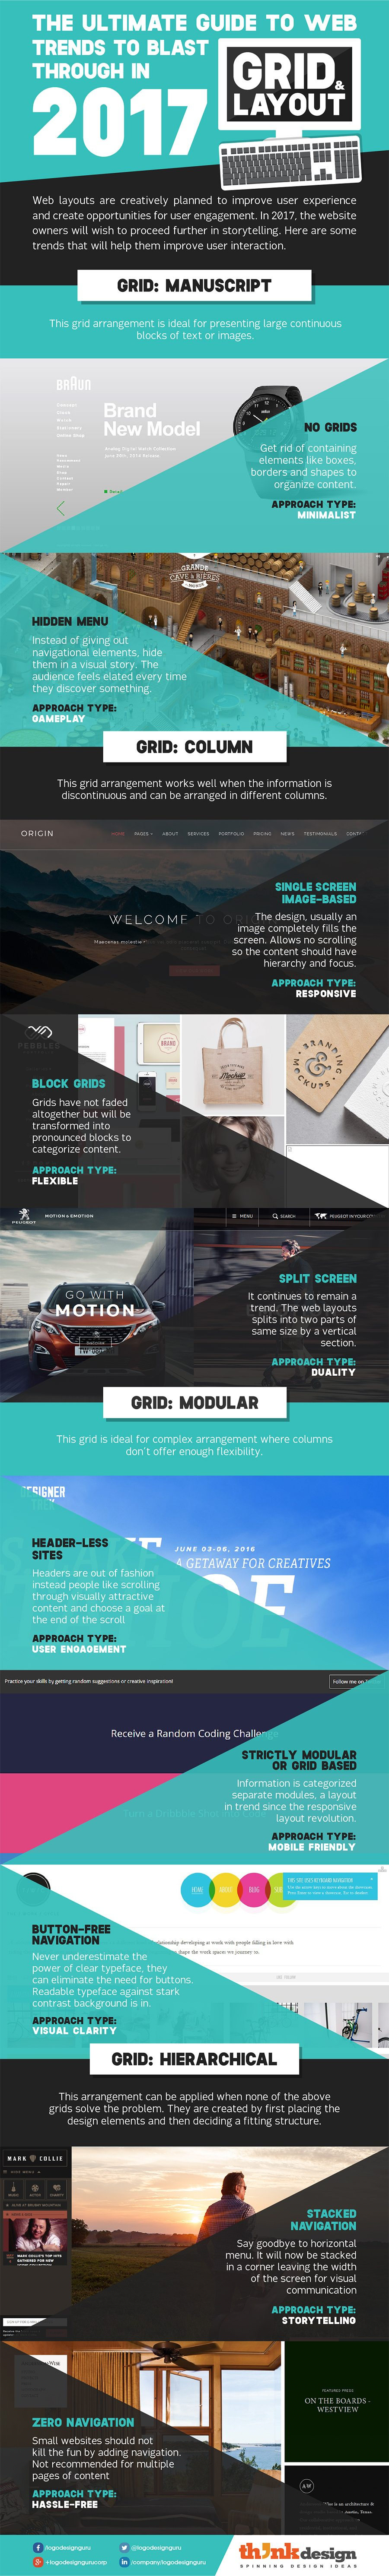 The ultimate guide to web trends for grid and layout design